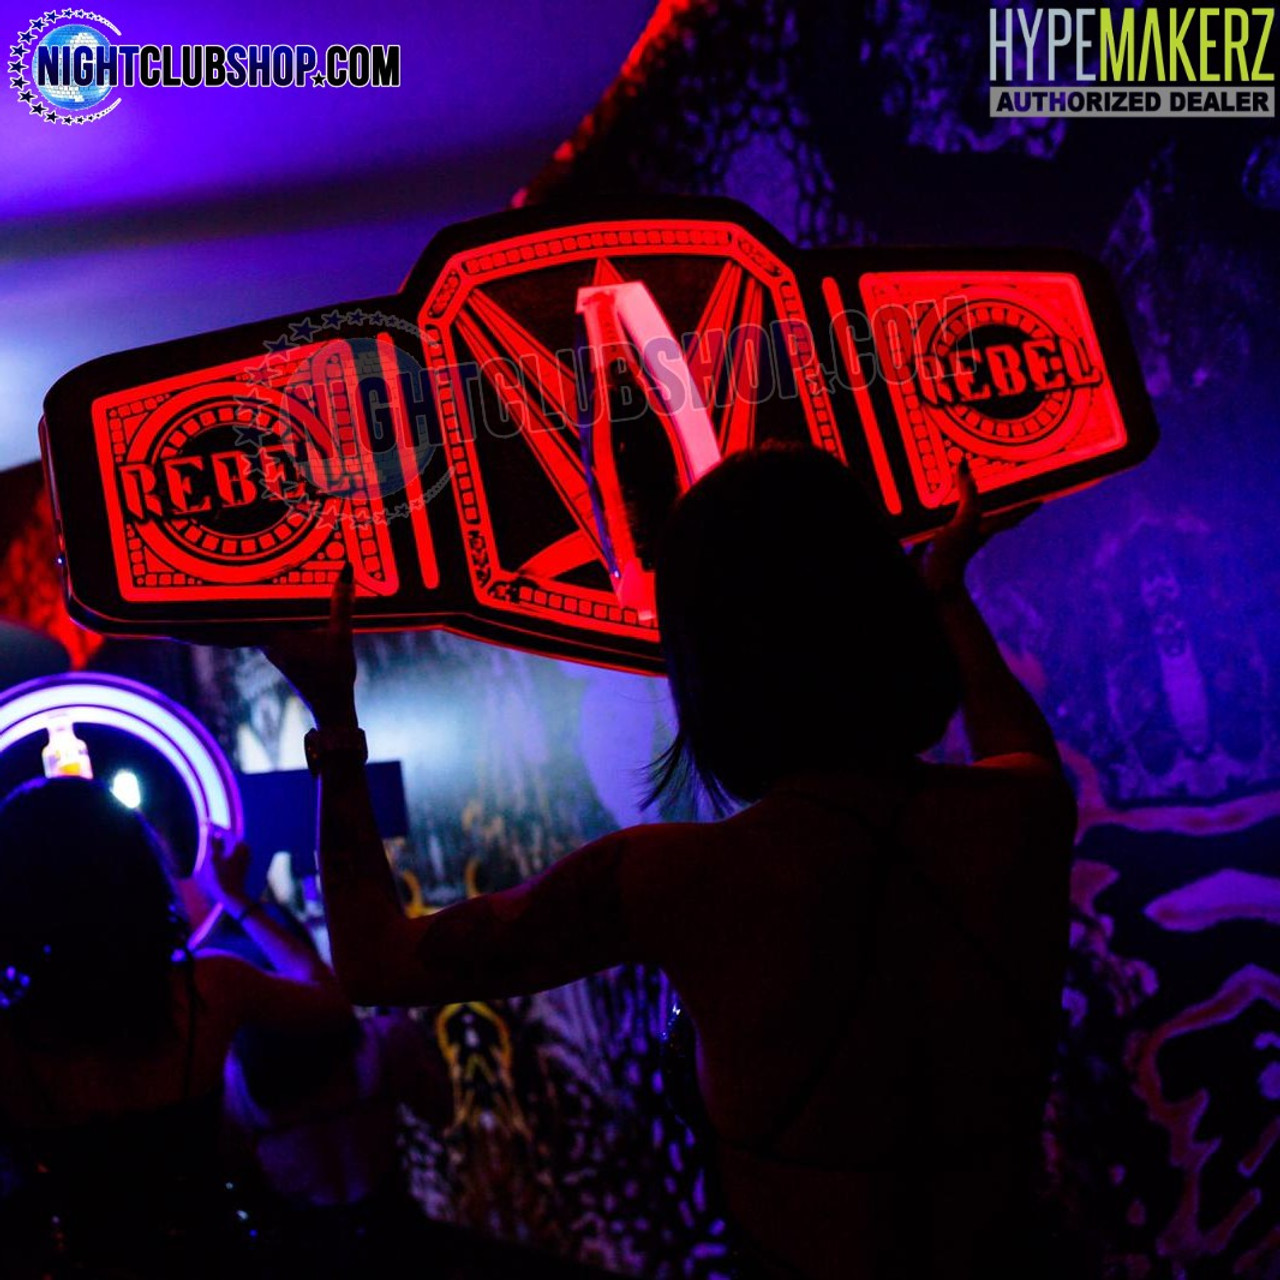 LED_Red_Remote_Controlled_Championship_Belt_RGB_Rebel_Nightclub_Nightlife_Trendsetter_Celebration_Celebrate_Winner_Nightclub_Nightclubshop_Club_Nightlife